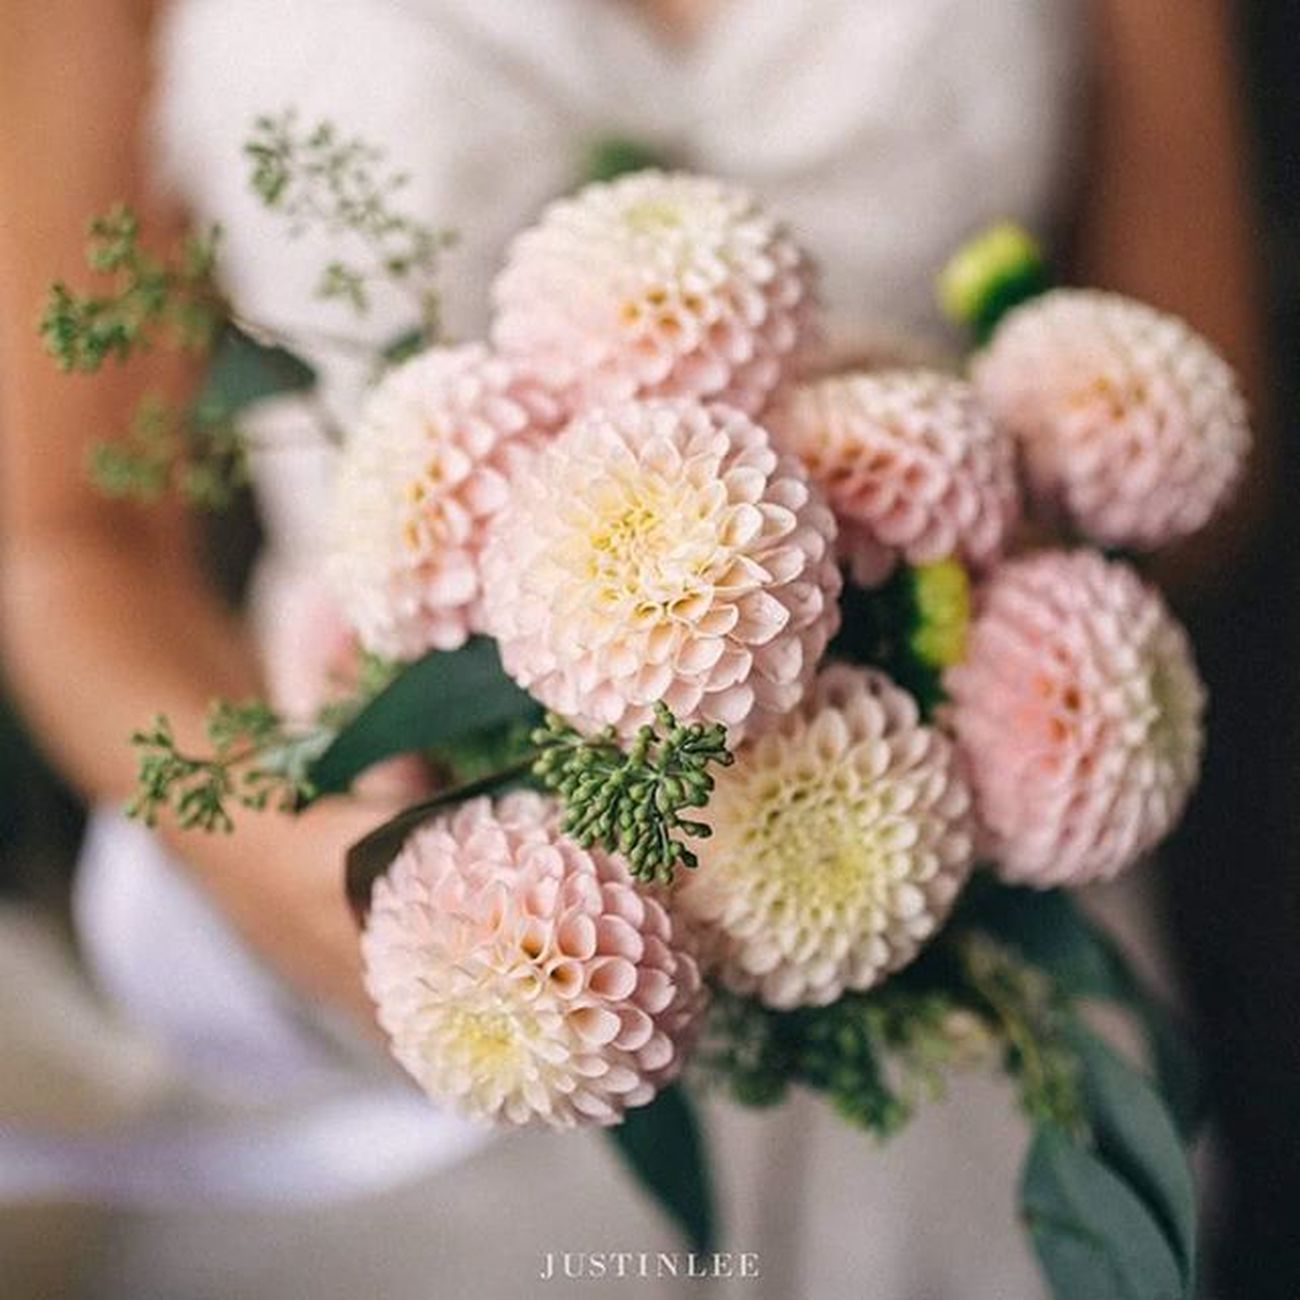 Dahlias..! Portlandphotographer Portlandweddingphotographer Portlandwedding Pdxweddings Oregonwedding Oregonweddingphotographer Portlandbride Portlandengagement Nwweddings Nwbrides Bouquet Flowers Dahlia Portlandflorist Portlandbrideandgroom Oregonbride Portlandia Justinleeportland Oregonbridemag Photobugcommunity